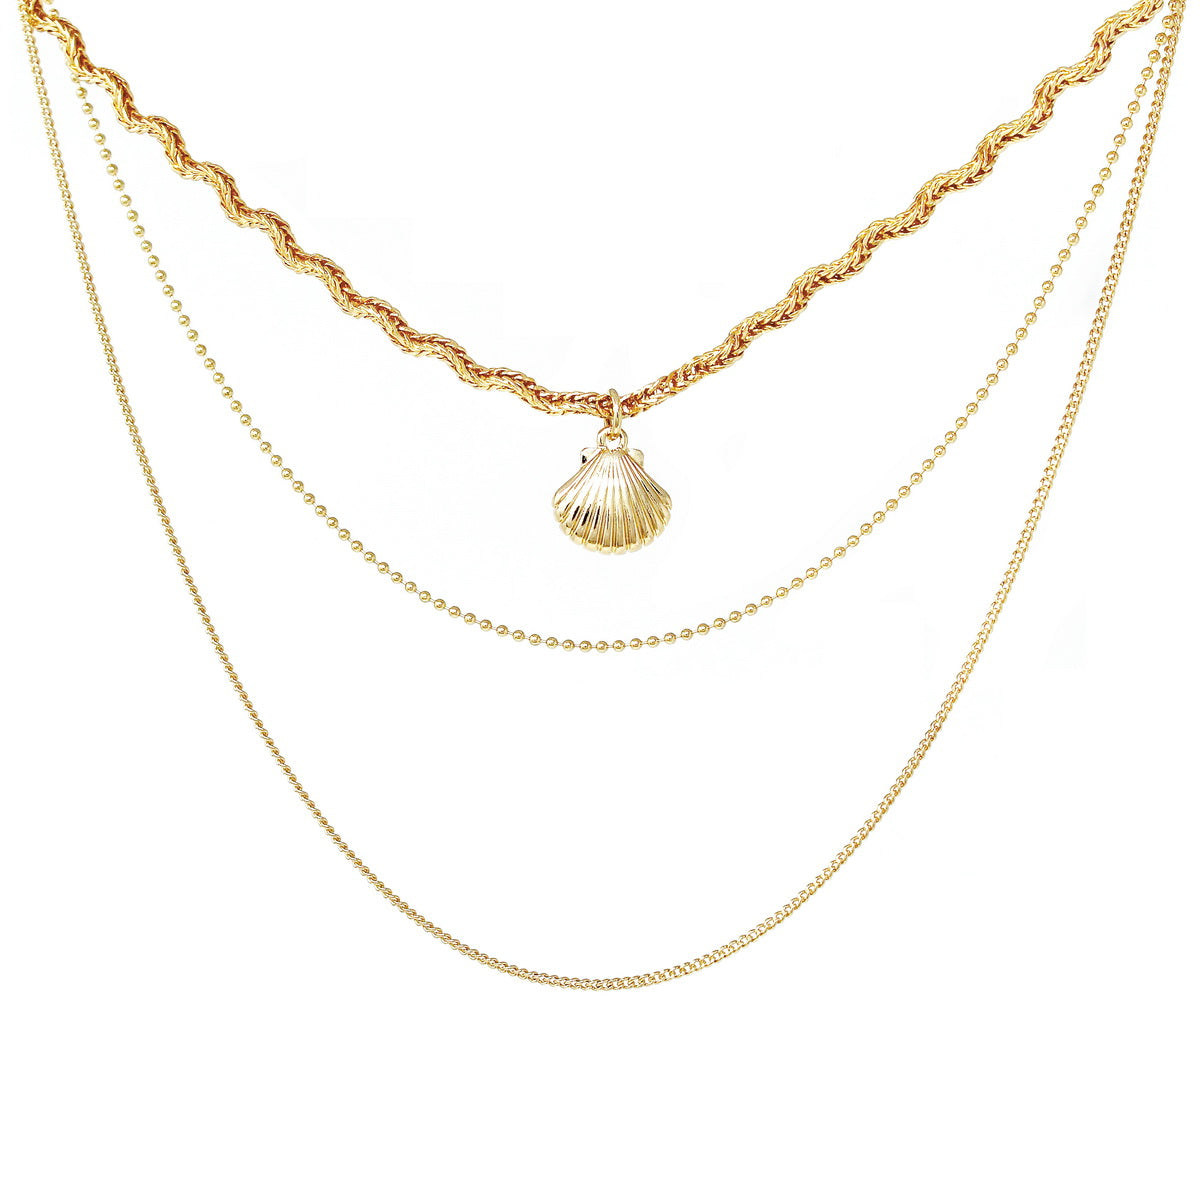 Shell Charm Triple Strand Short Chain Necklace